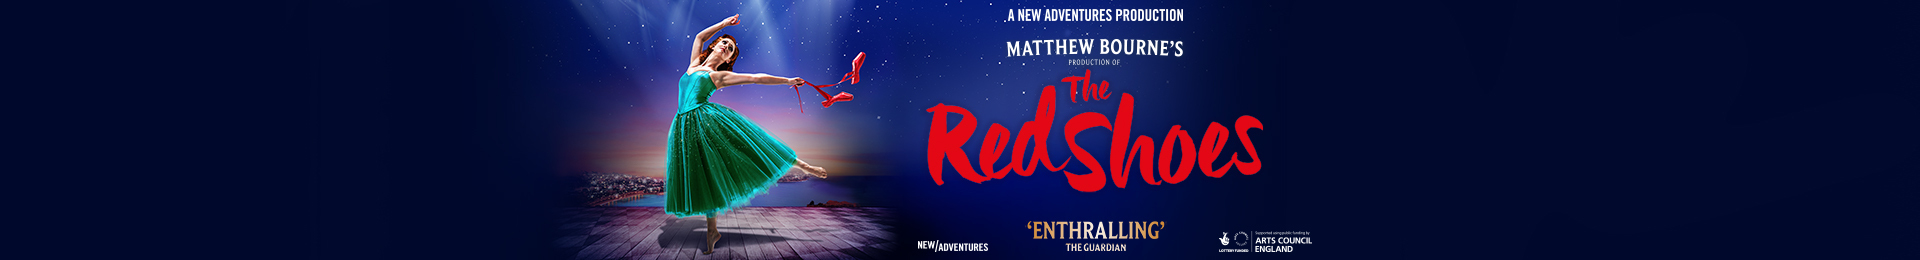 The Red Shoes - event header